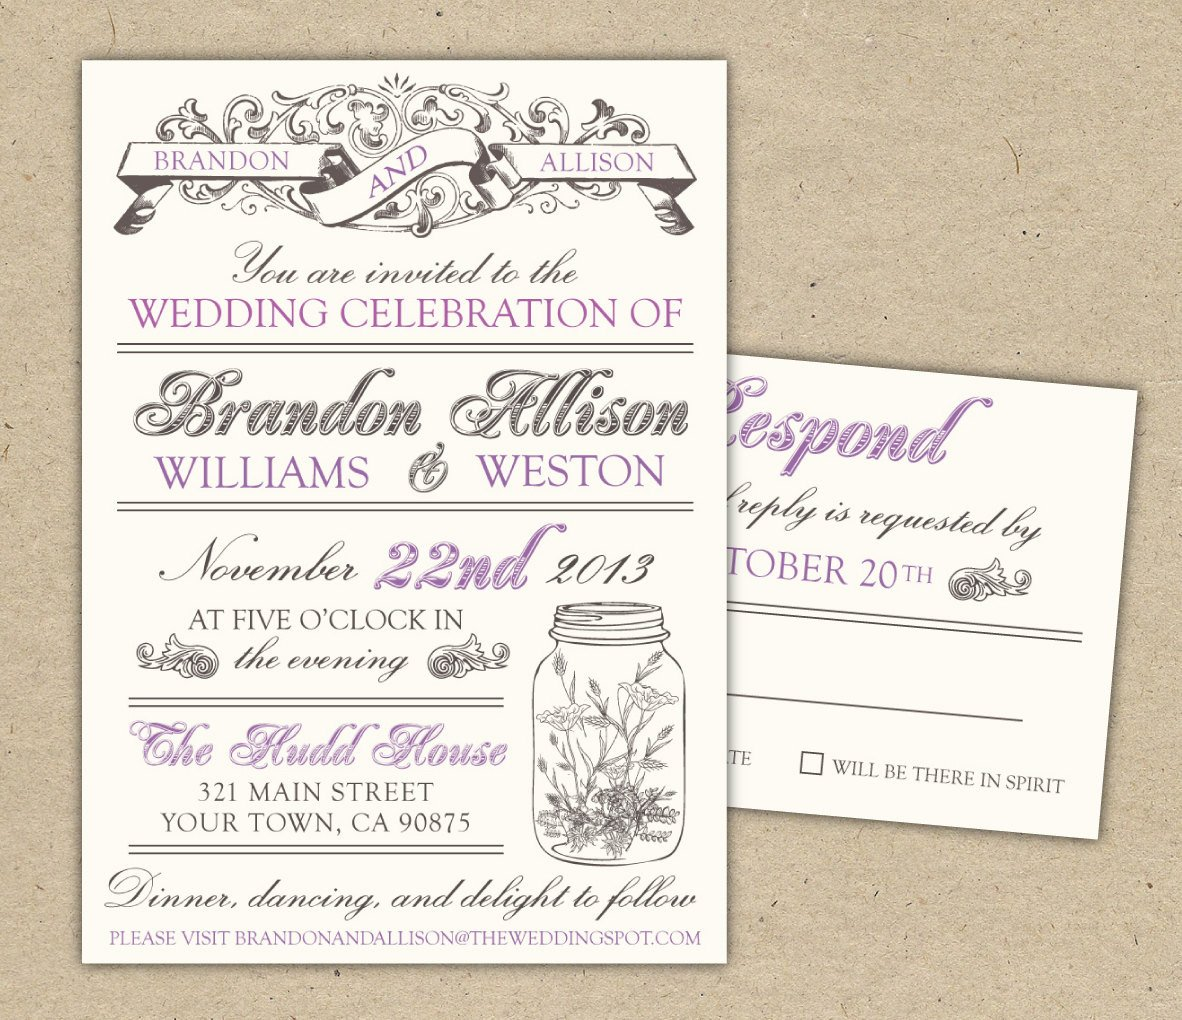 Free Vintage Wedding Invitation Templates 30 Unique Vintage Wedding Invitations